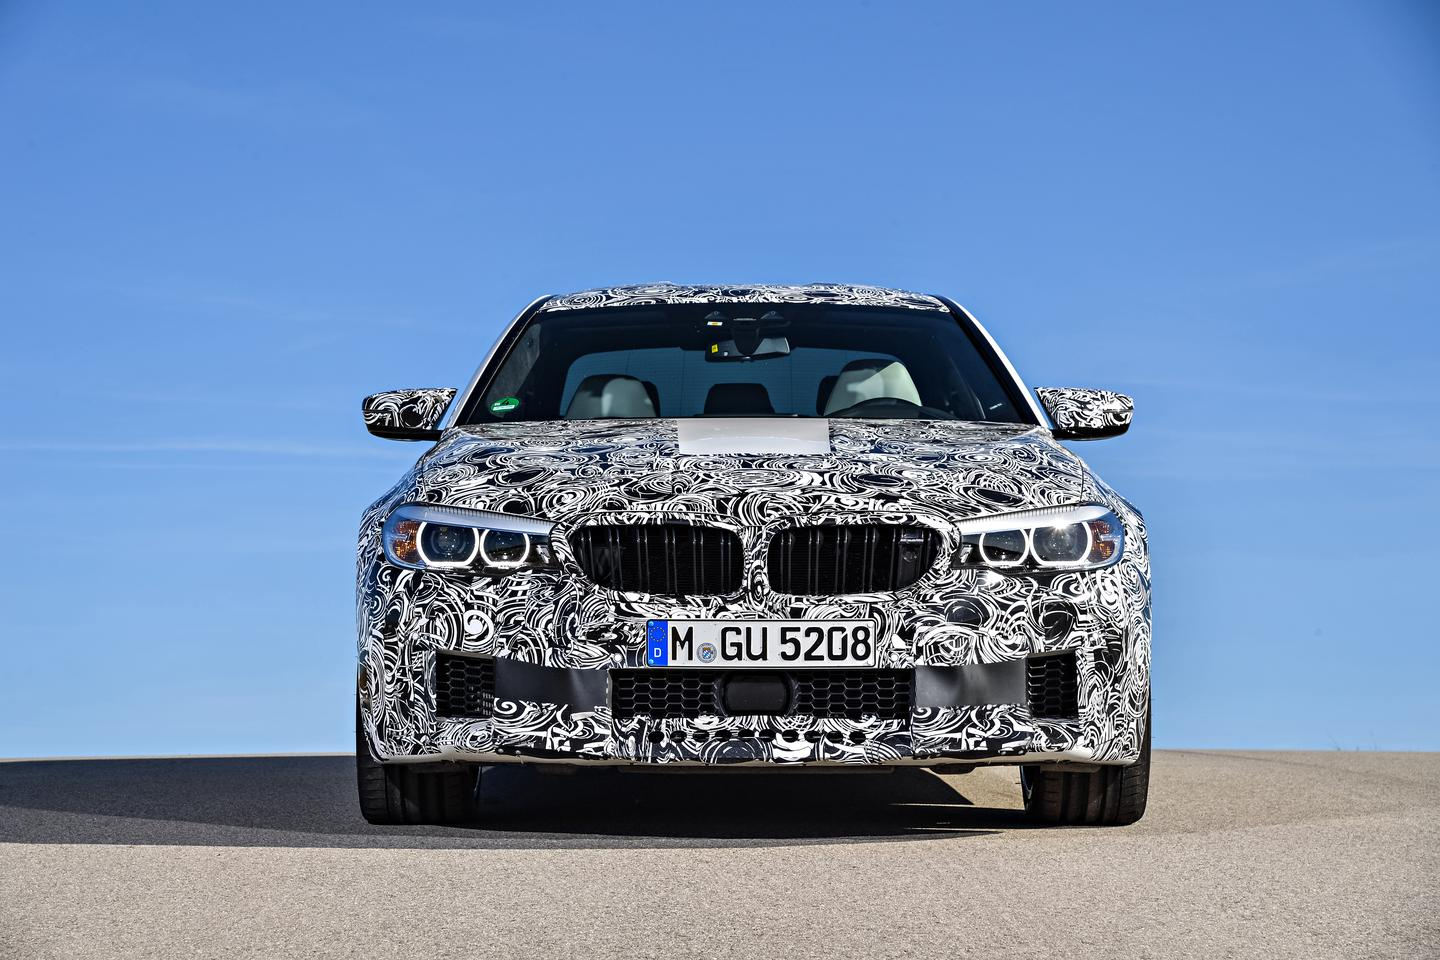 The new BMW M5 will be all-wheel drive